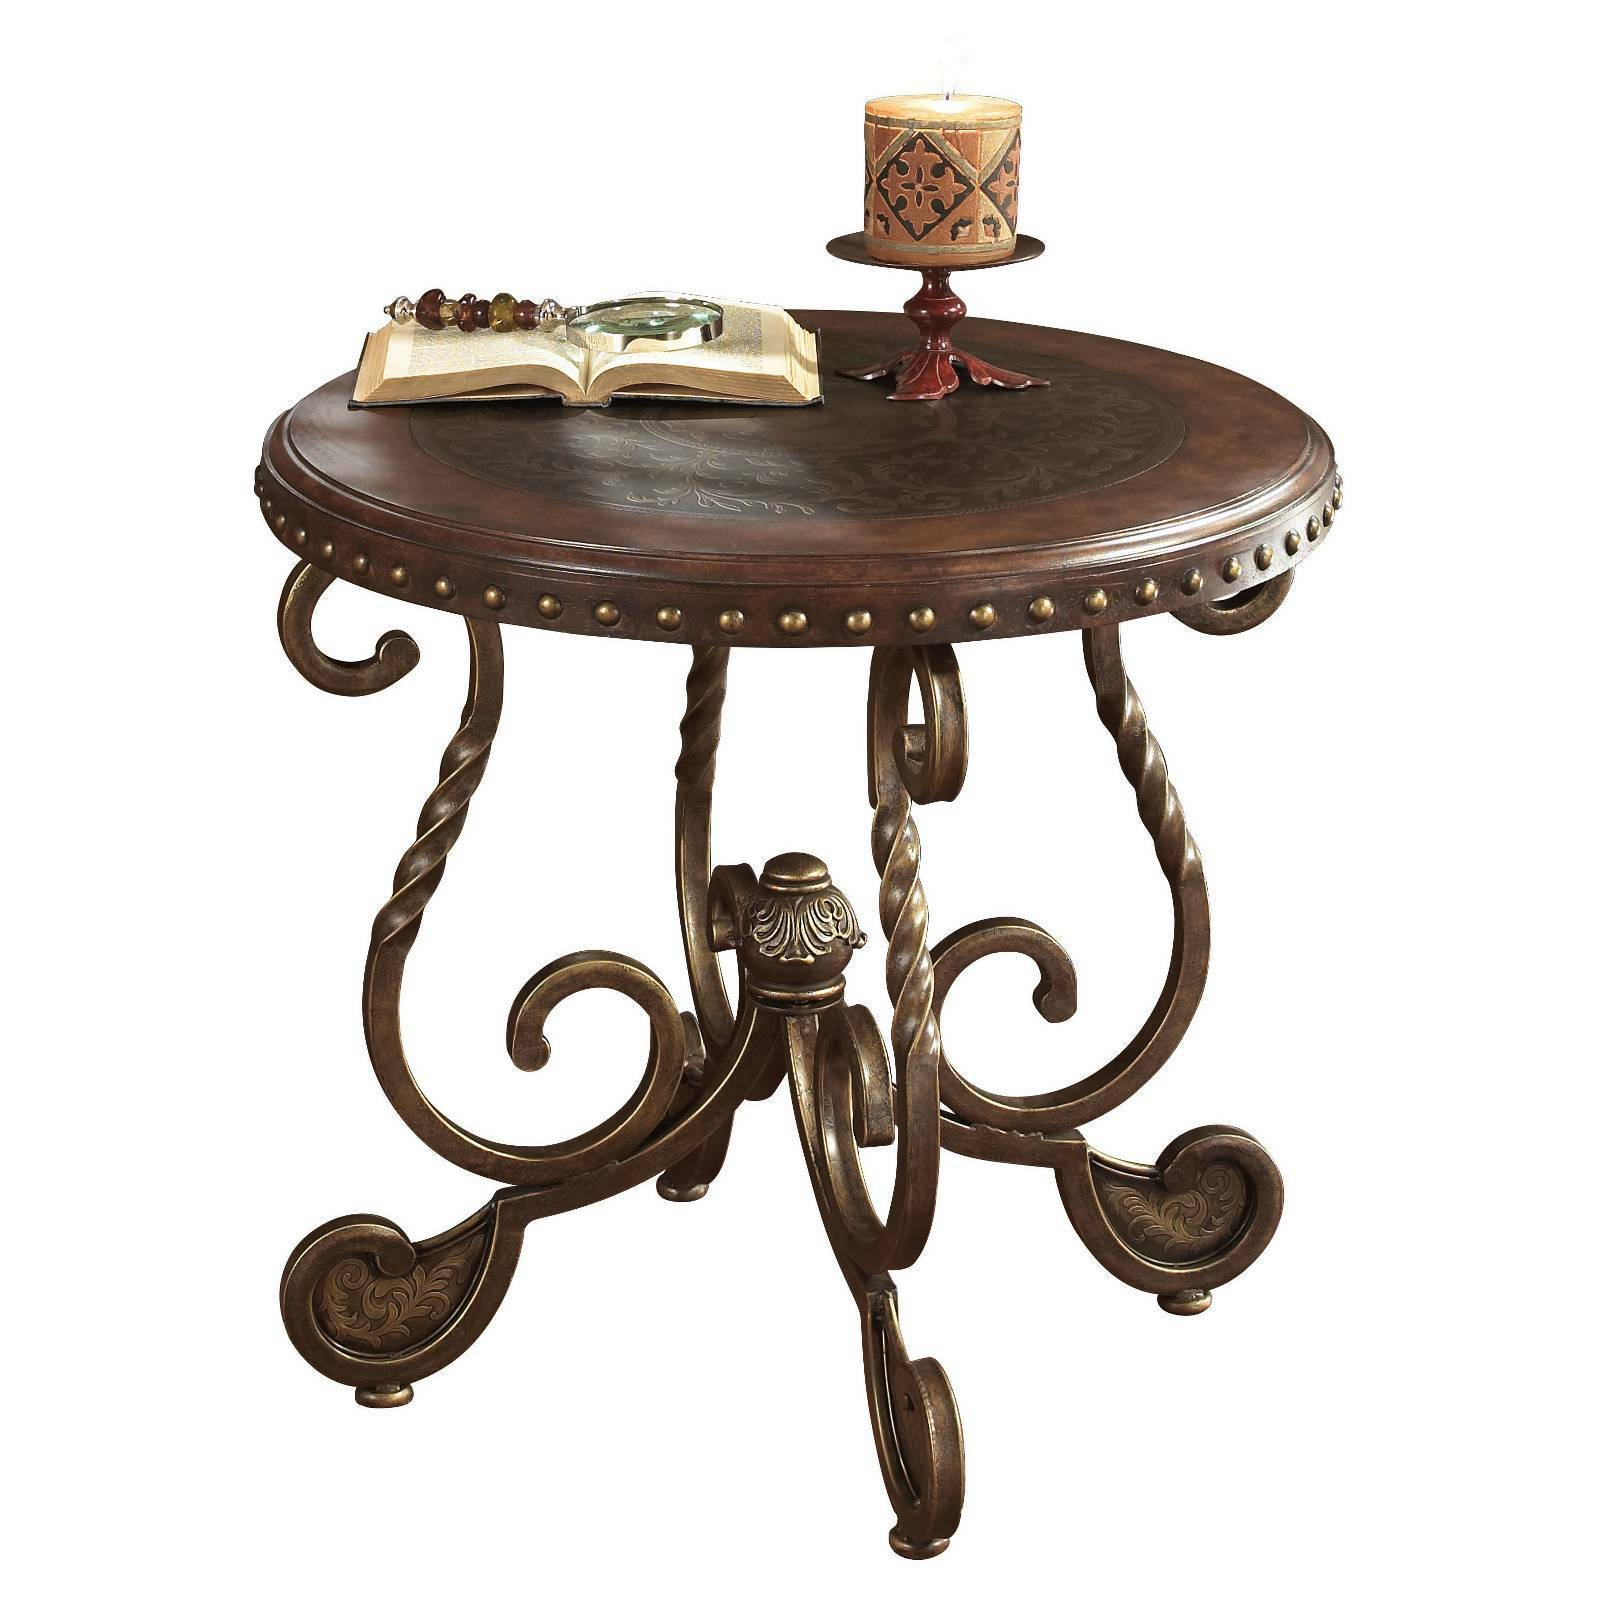 Signature design by ashley rafferty round end table ebay picture 1 of 2 geotapseo Images